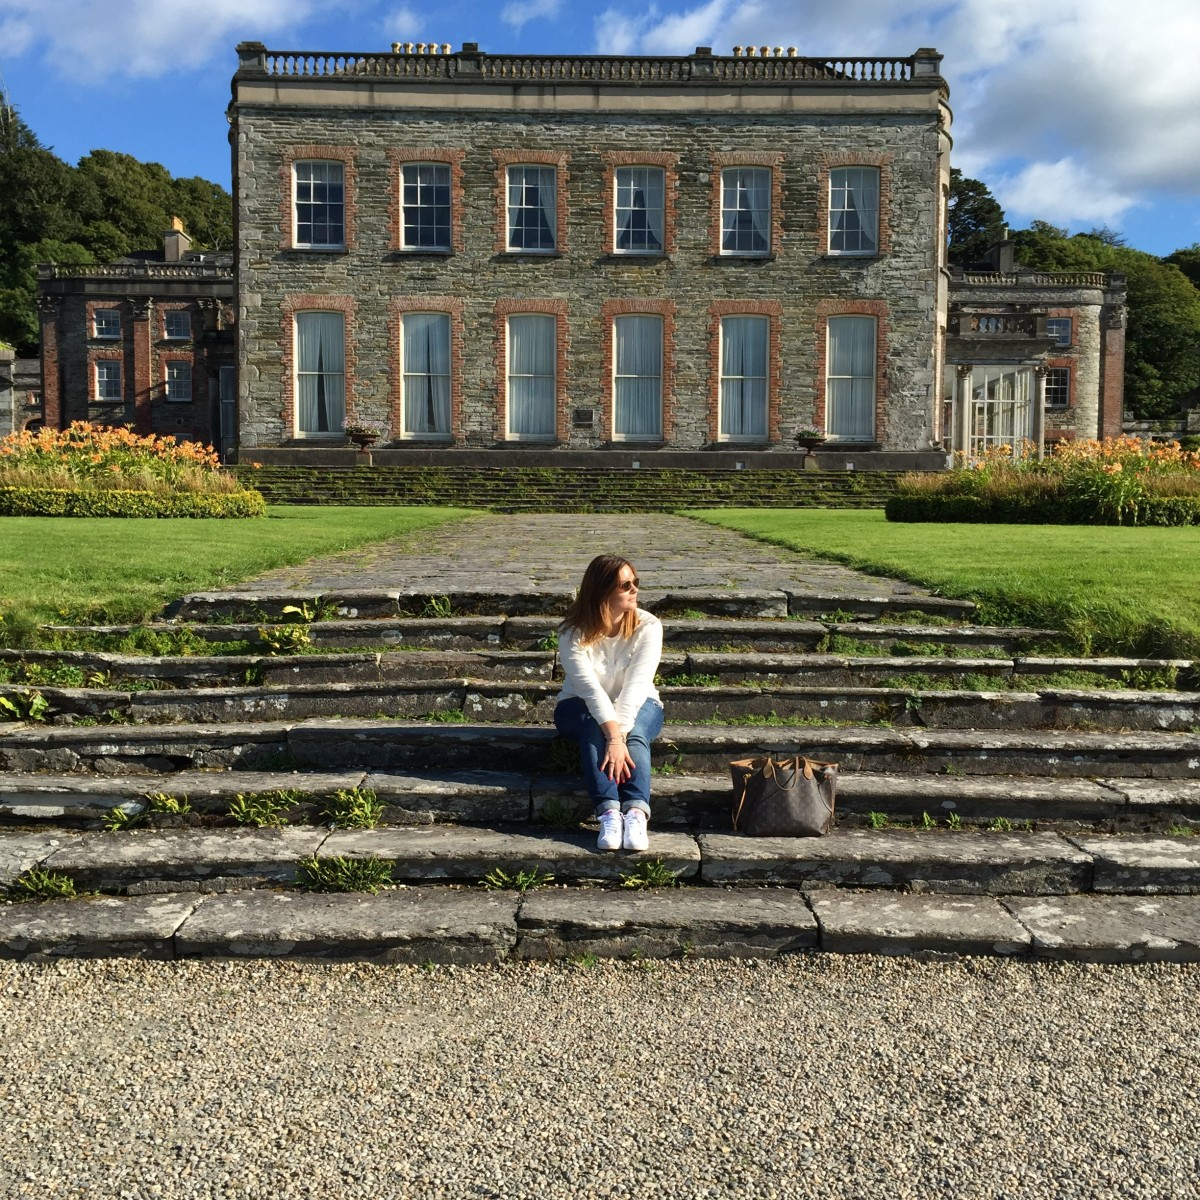 bantry house in Irlanda